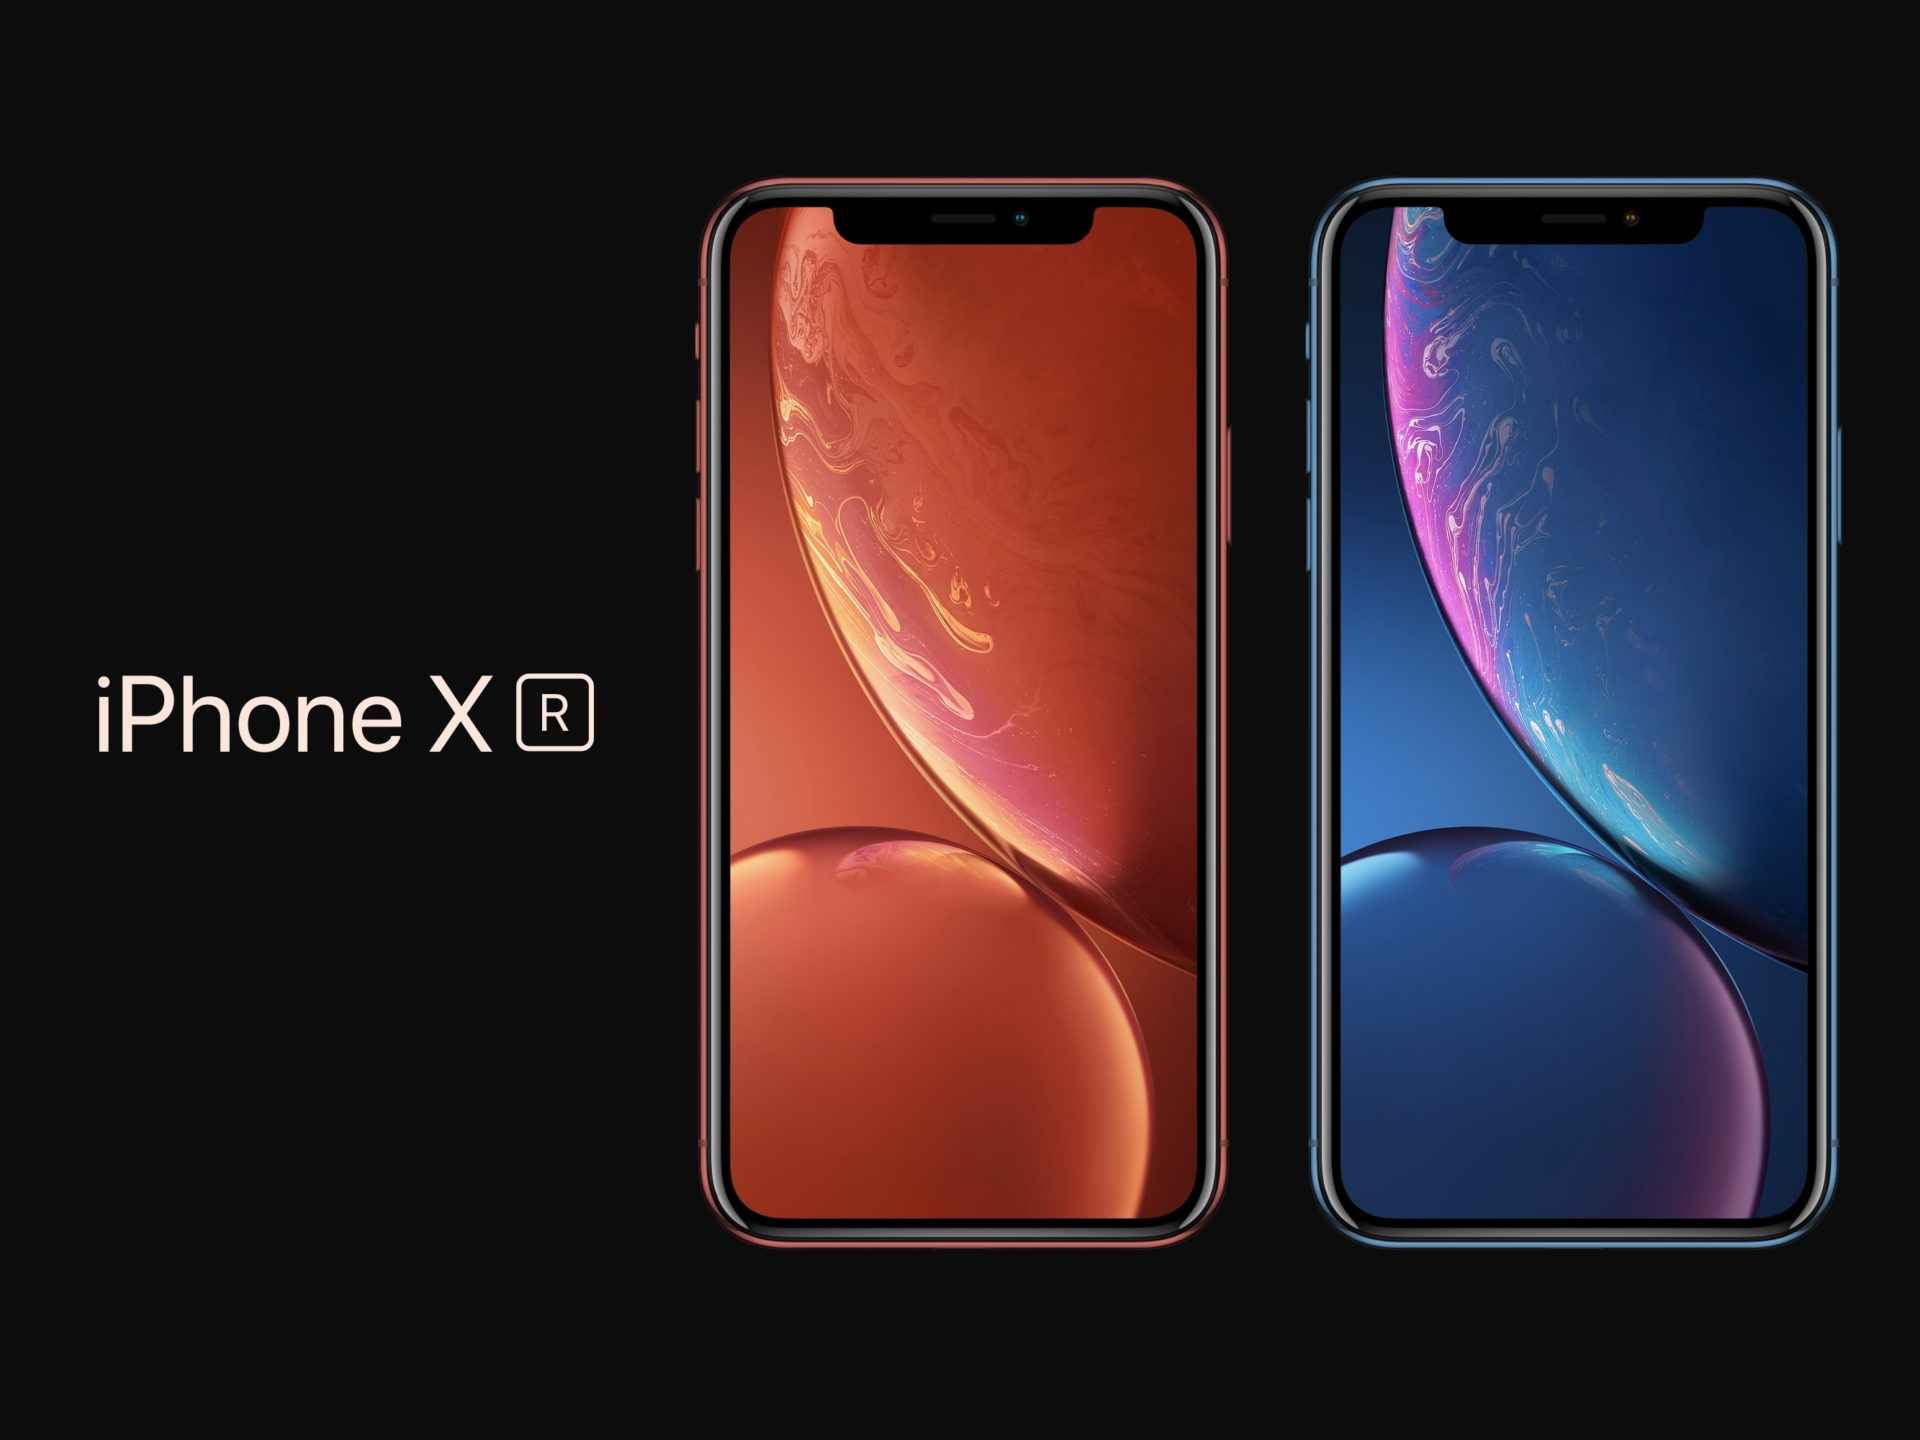 The apple company statements Iphone XR is its best selling since release